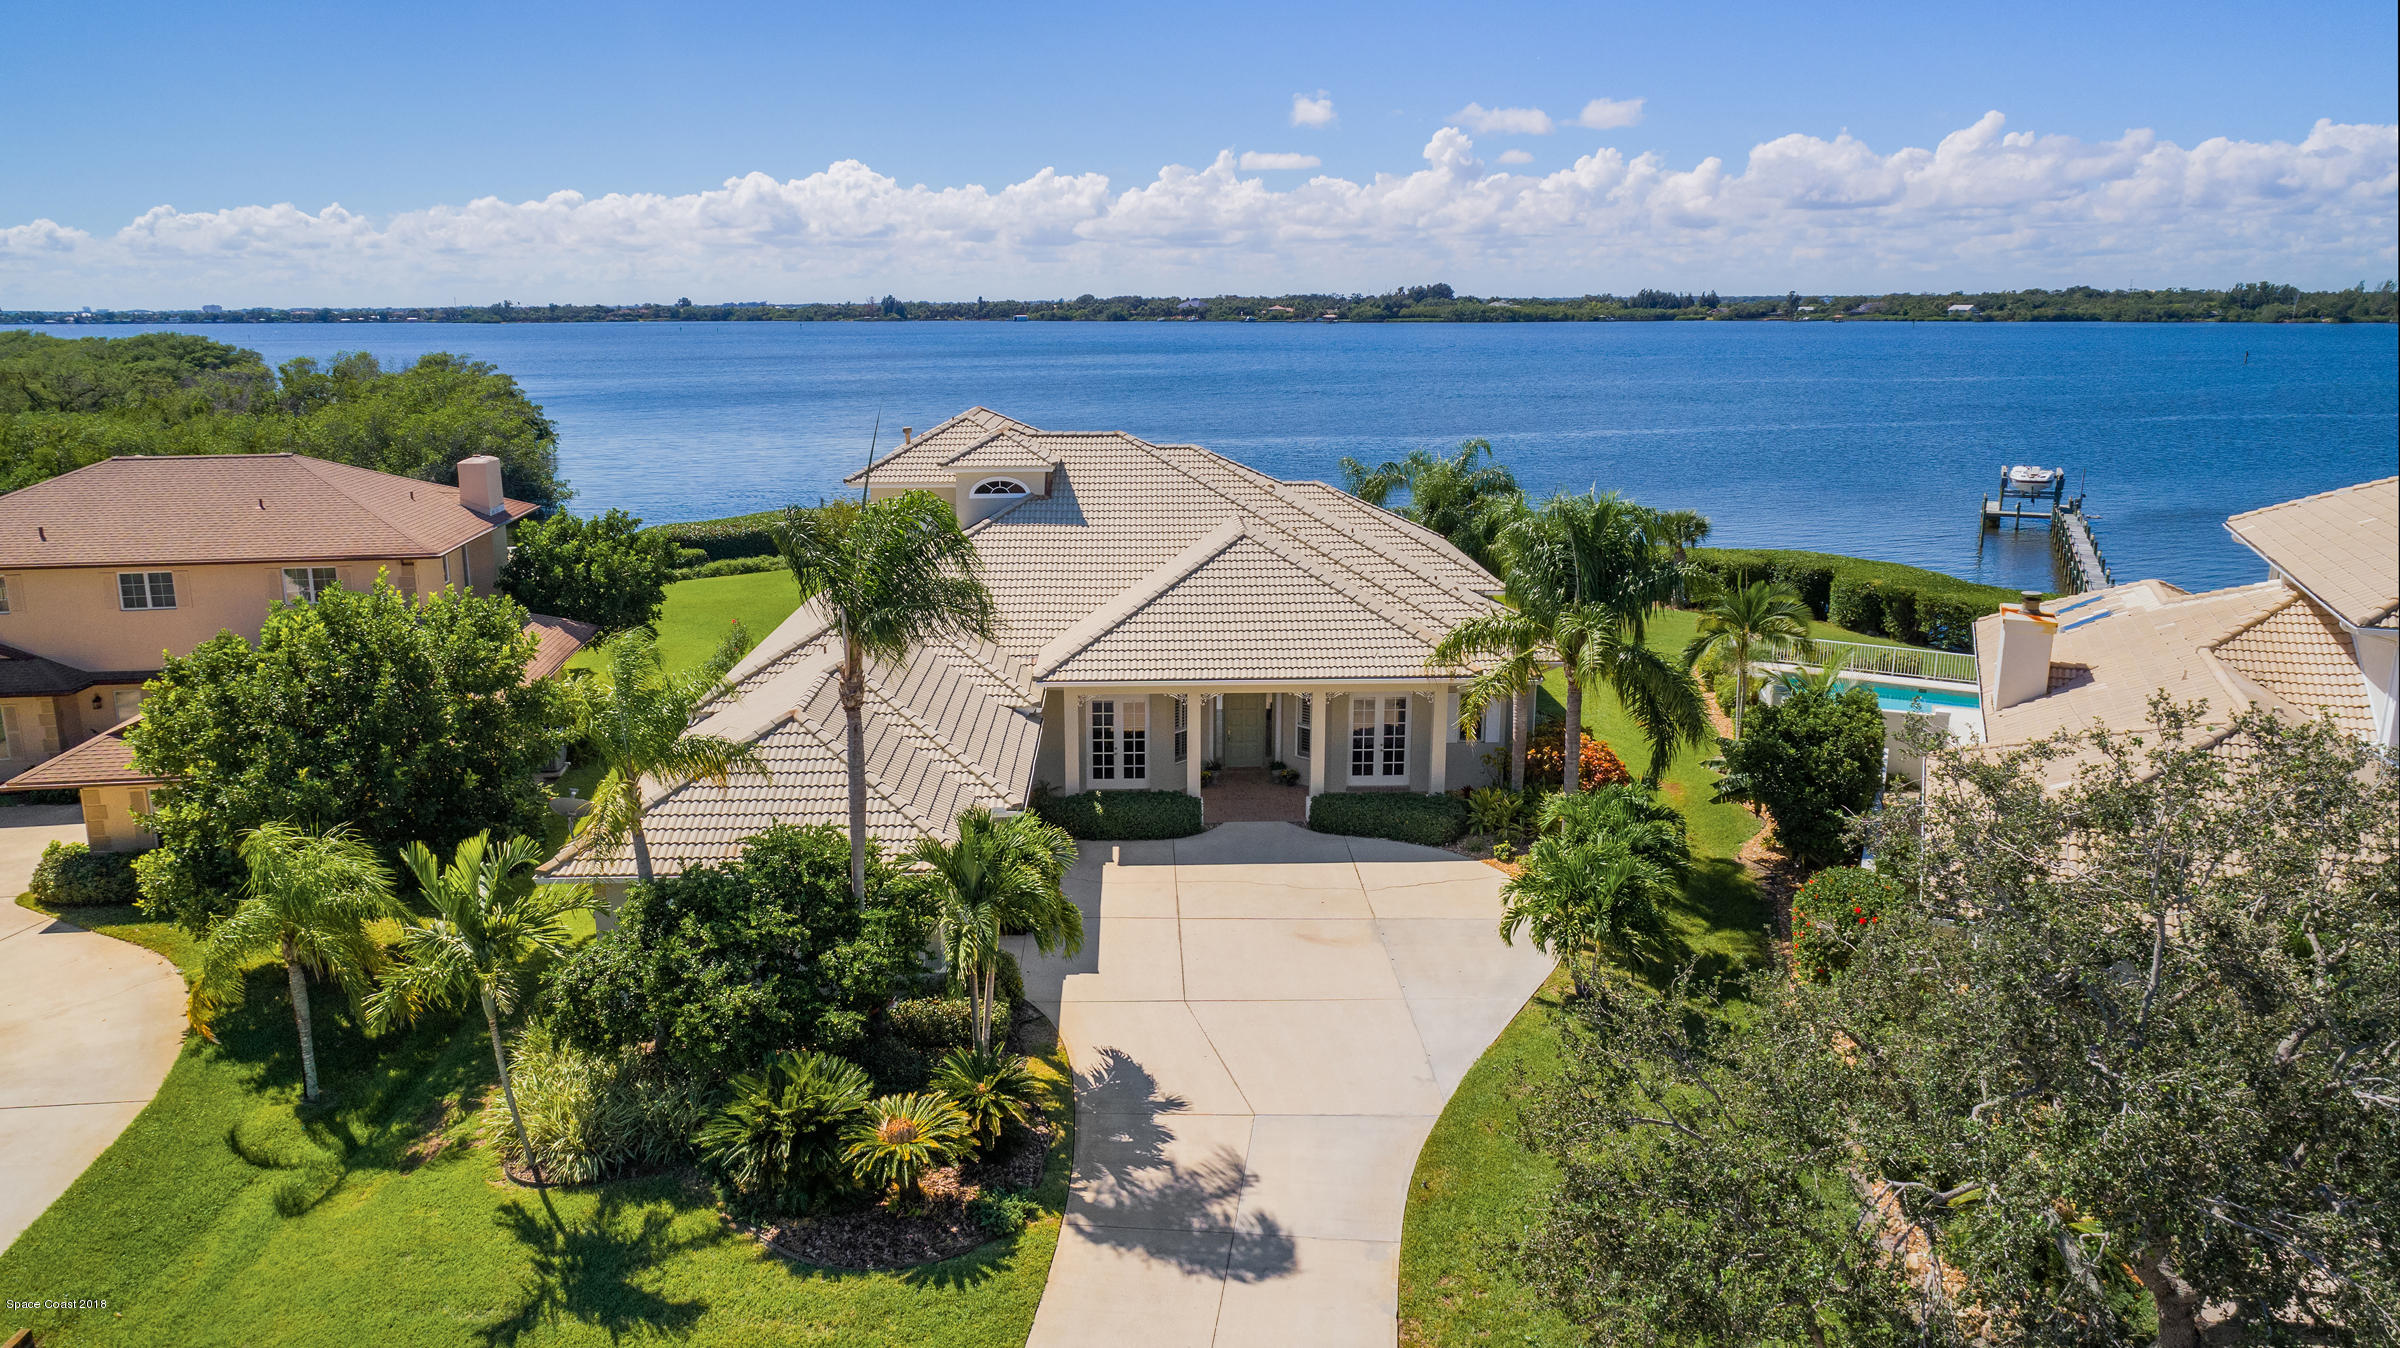 Property for Sale at 906 Loggerhead Island 906 Loggerhead Island Satellite Beach, Florida 32937 United States